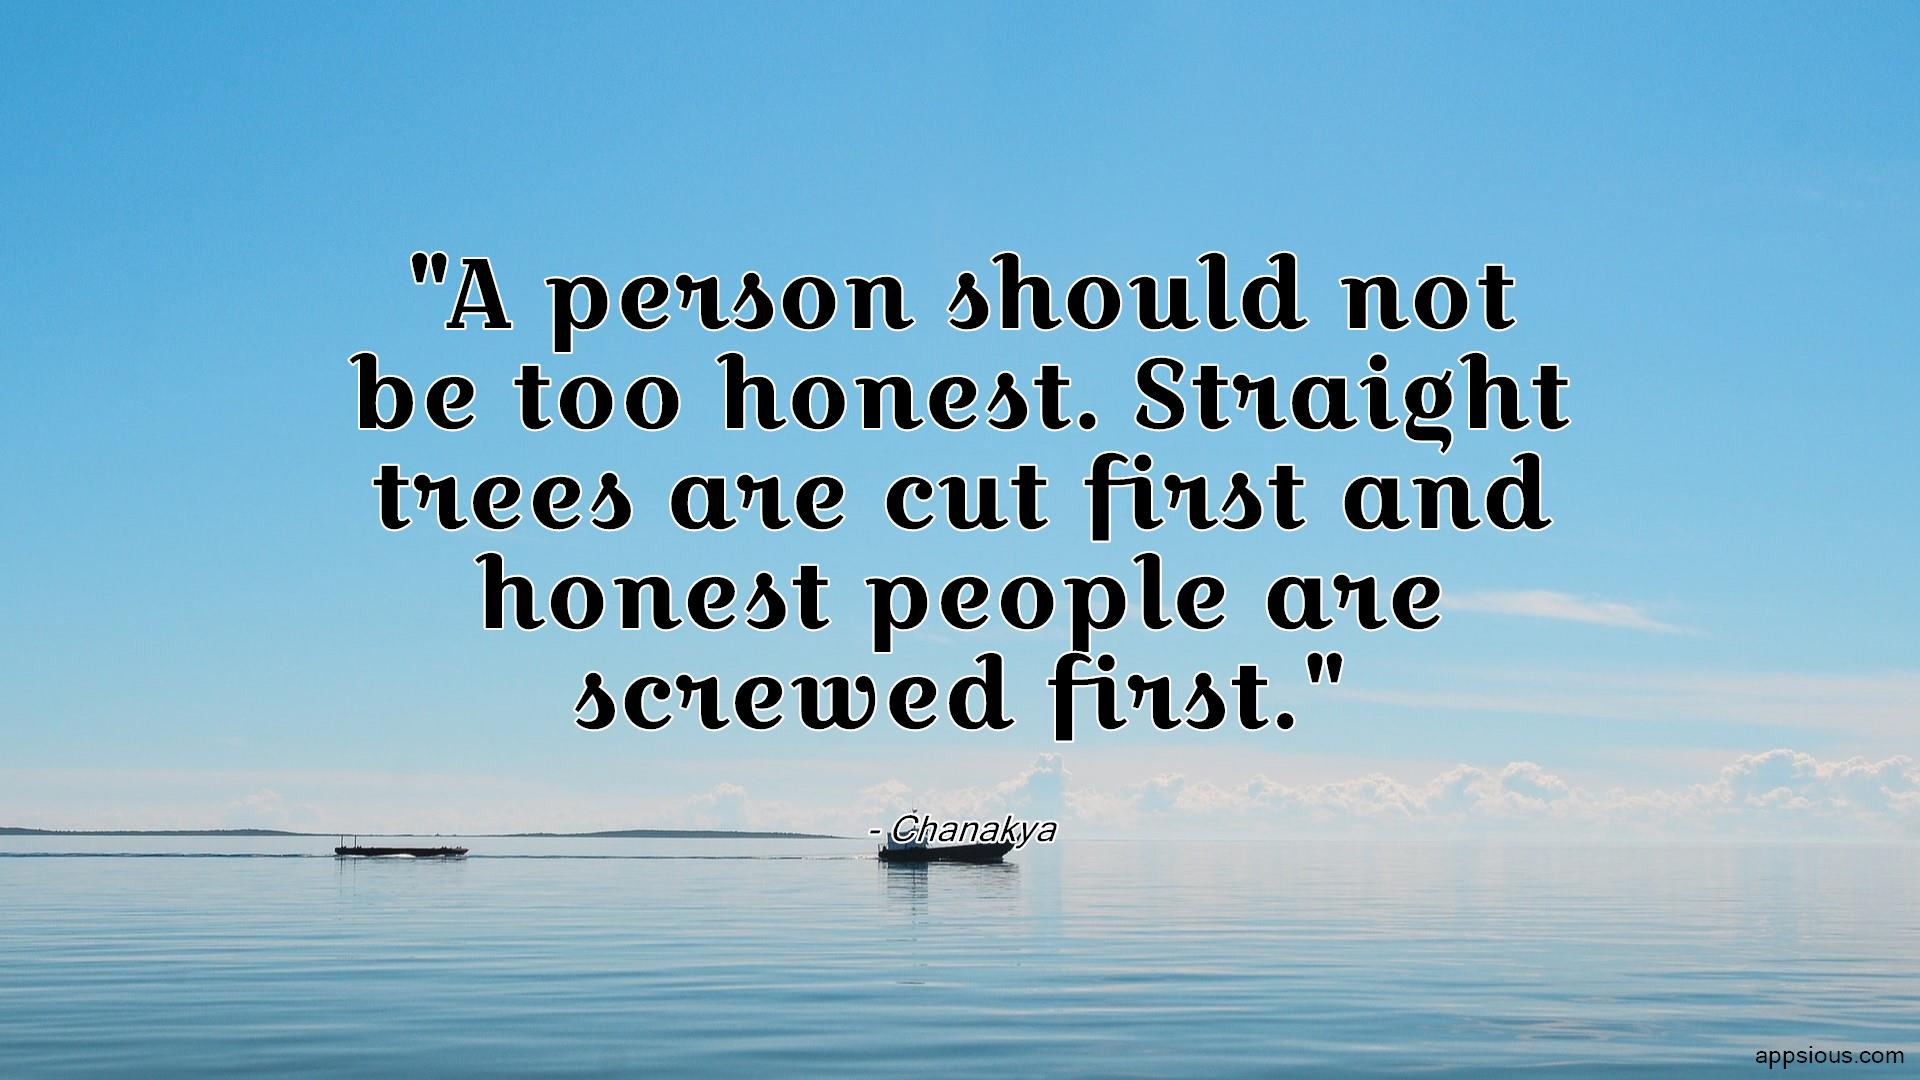 A person should not be too honest. Straight trees are cut first and honest people are screwed first.